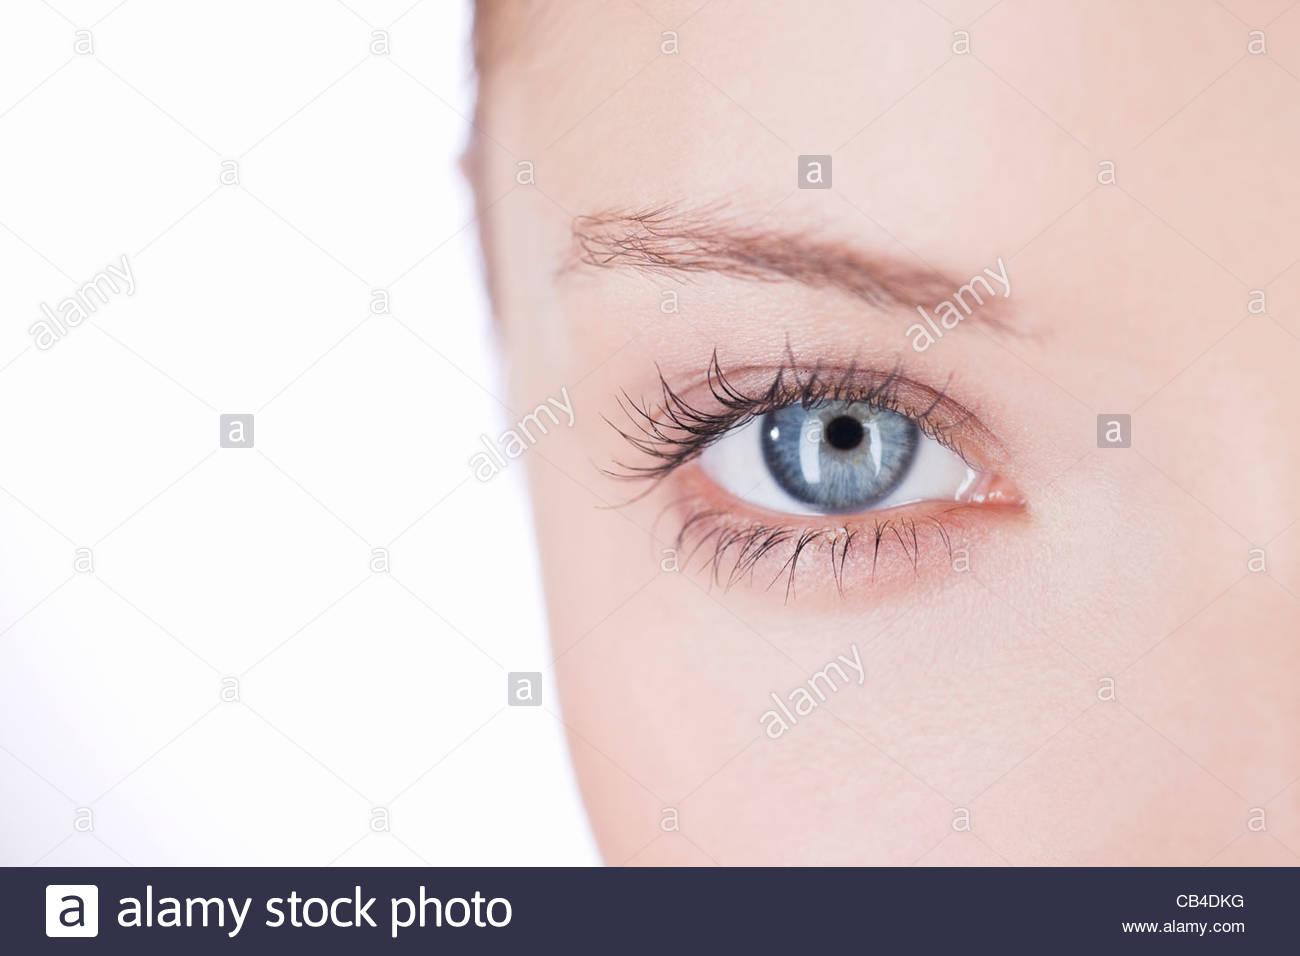 Close-up of a woman's right eye - Stock Image